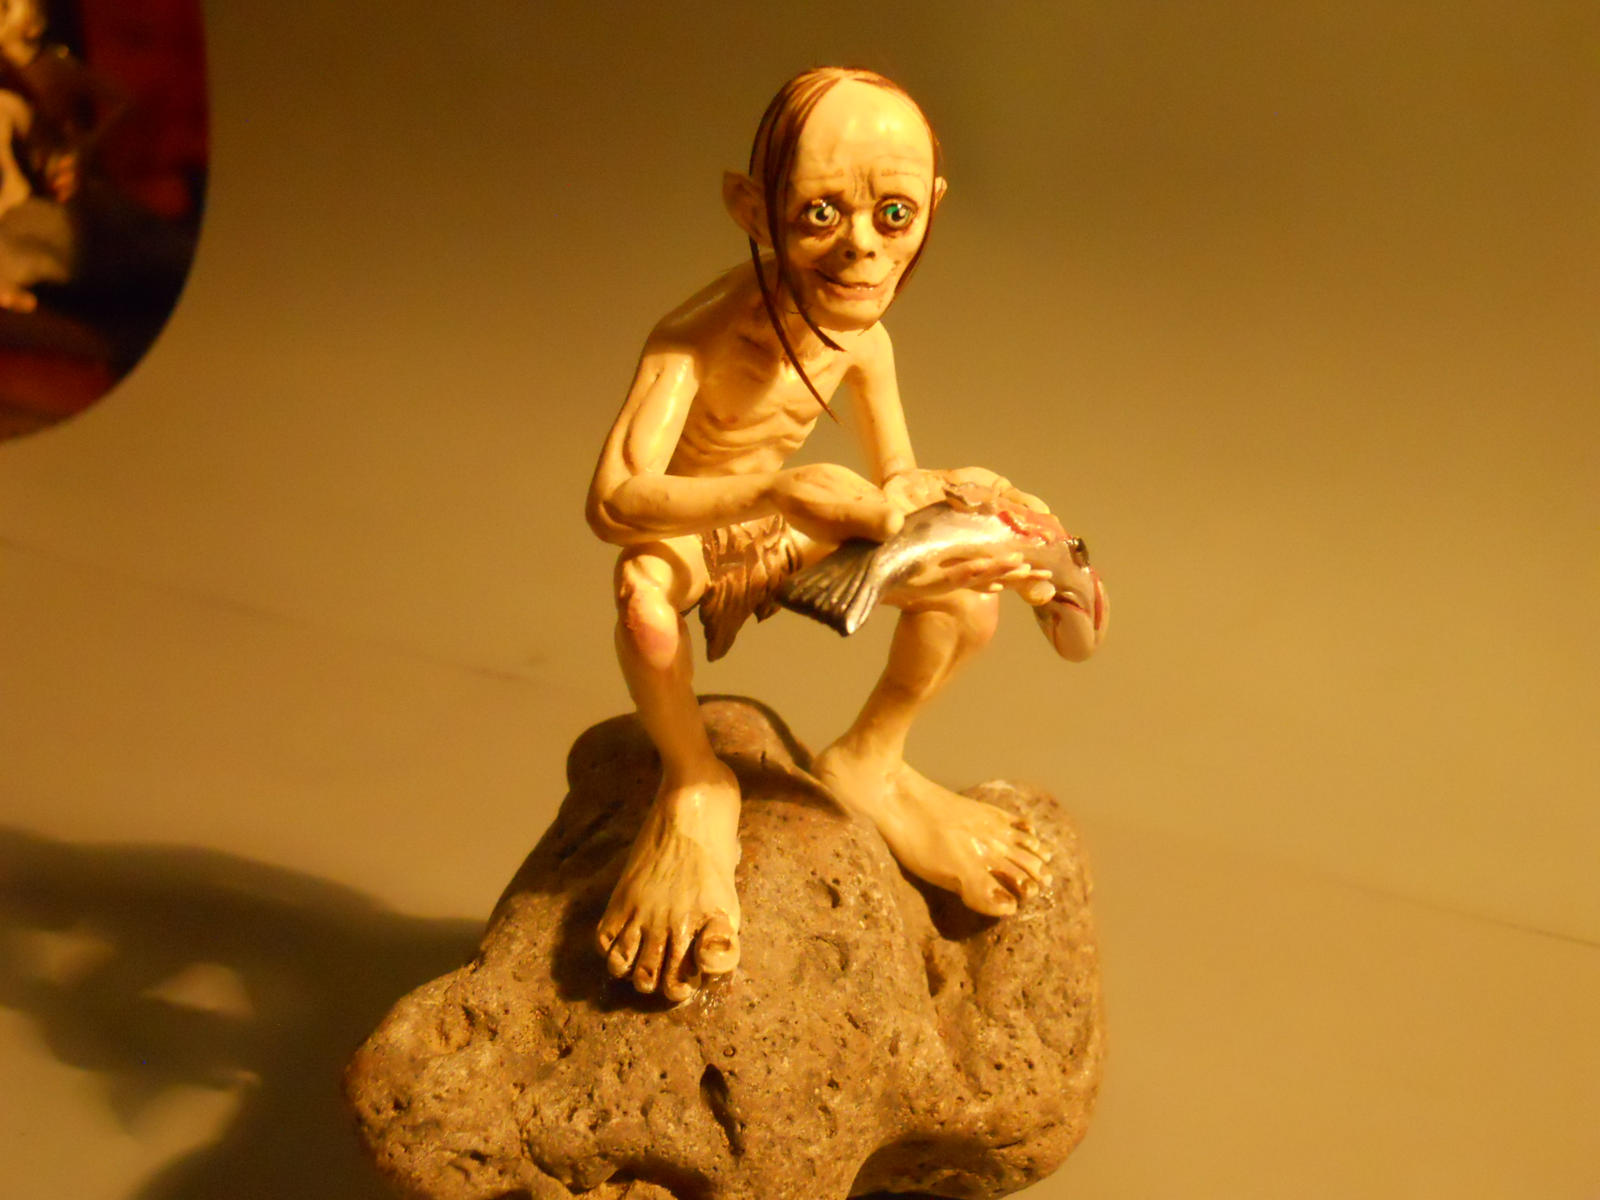 Smeagol Holding Ring Hd Eating smeagol figure bySmeagol Ring